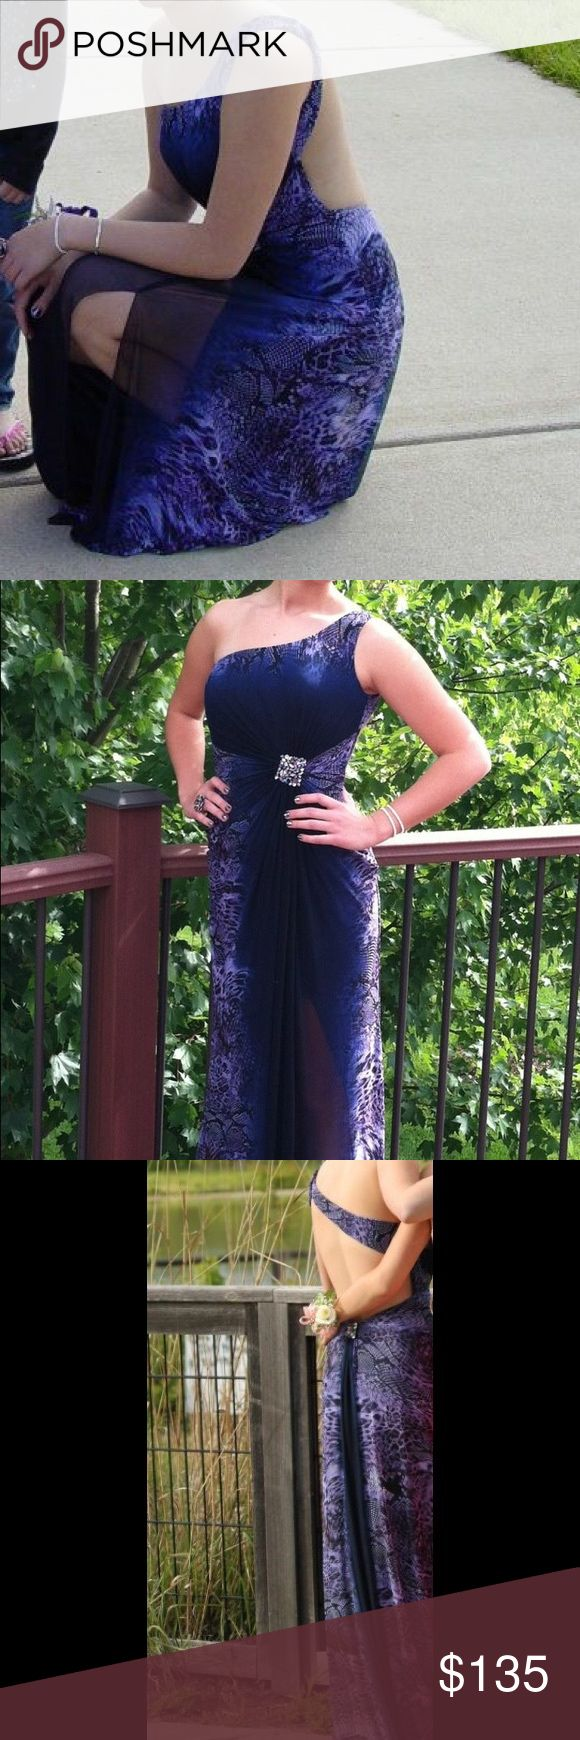 La Femme prom dress Perfect condition, worn once. Fits like a 4 but is stretchy material. La Femme Dresses Prom